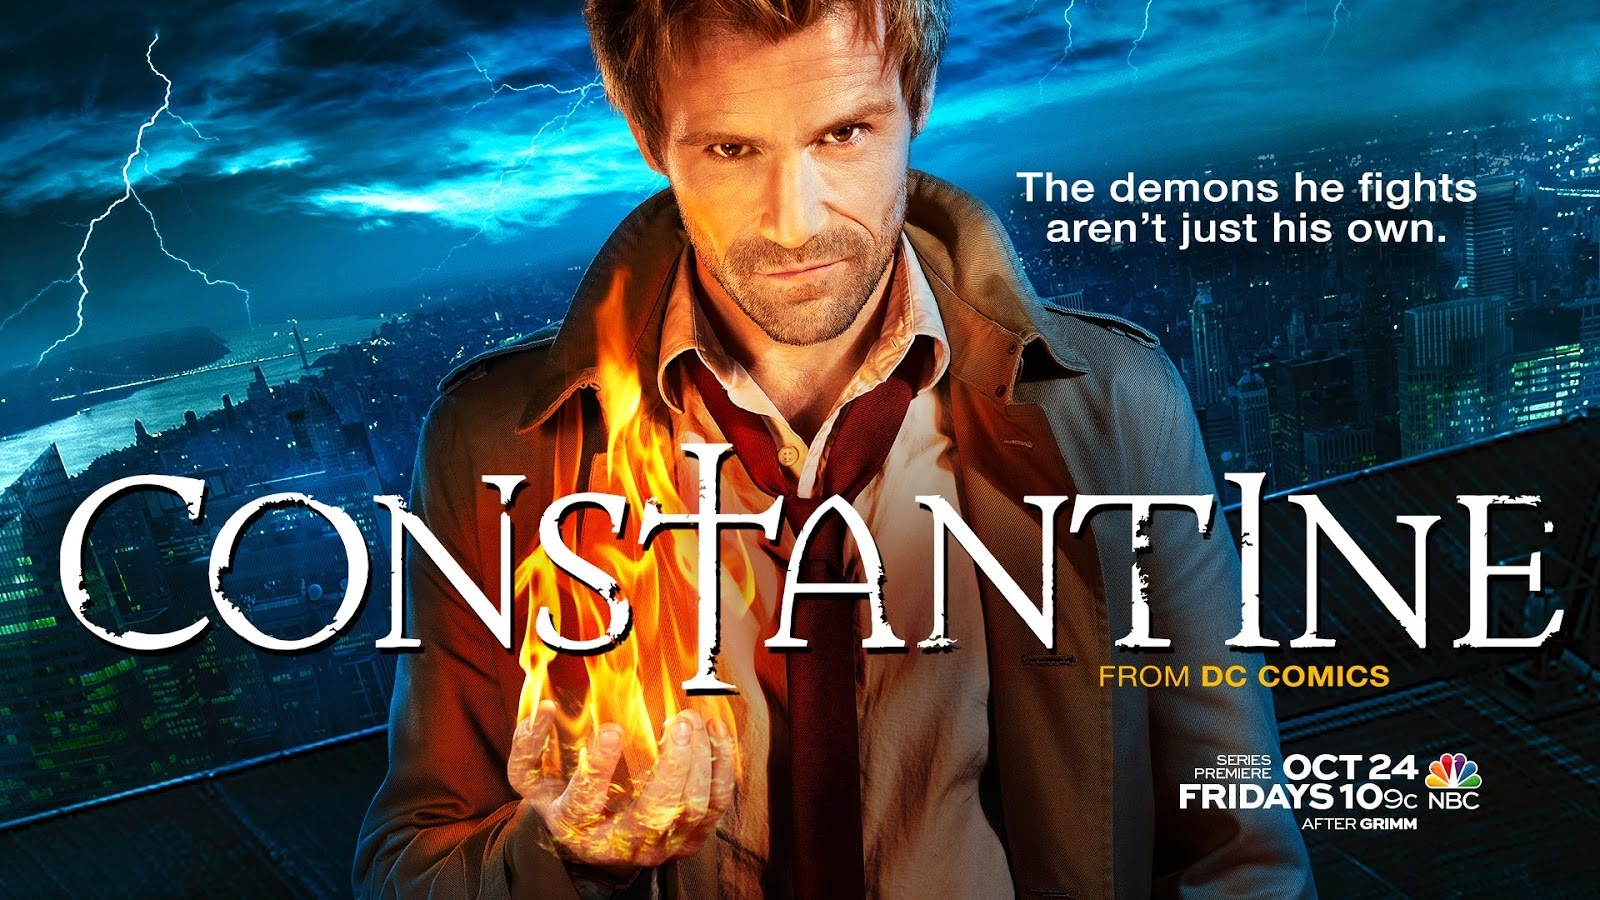 Constantine - Season 1 - 13 Episodes Only, Season 2 Still in Contention at NBC